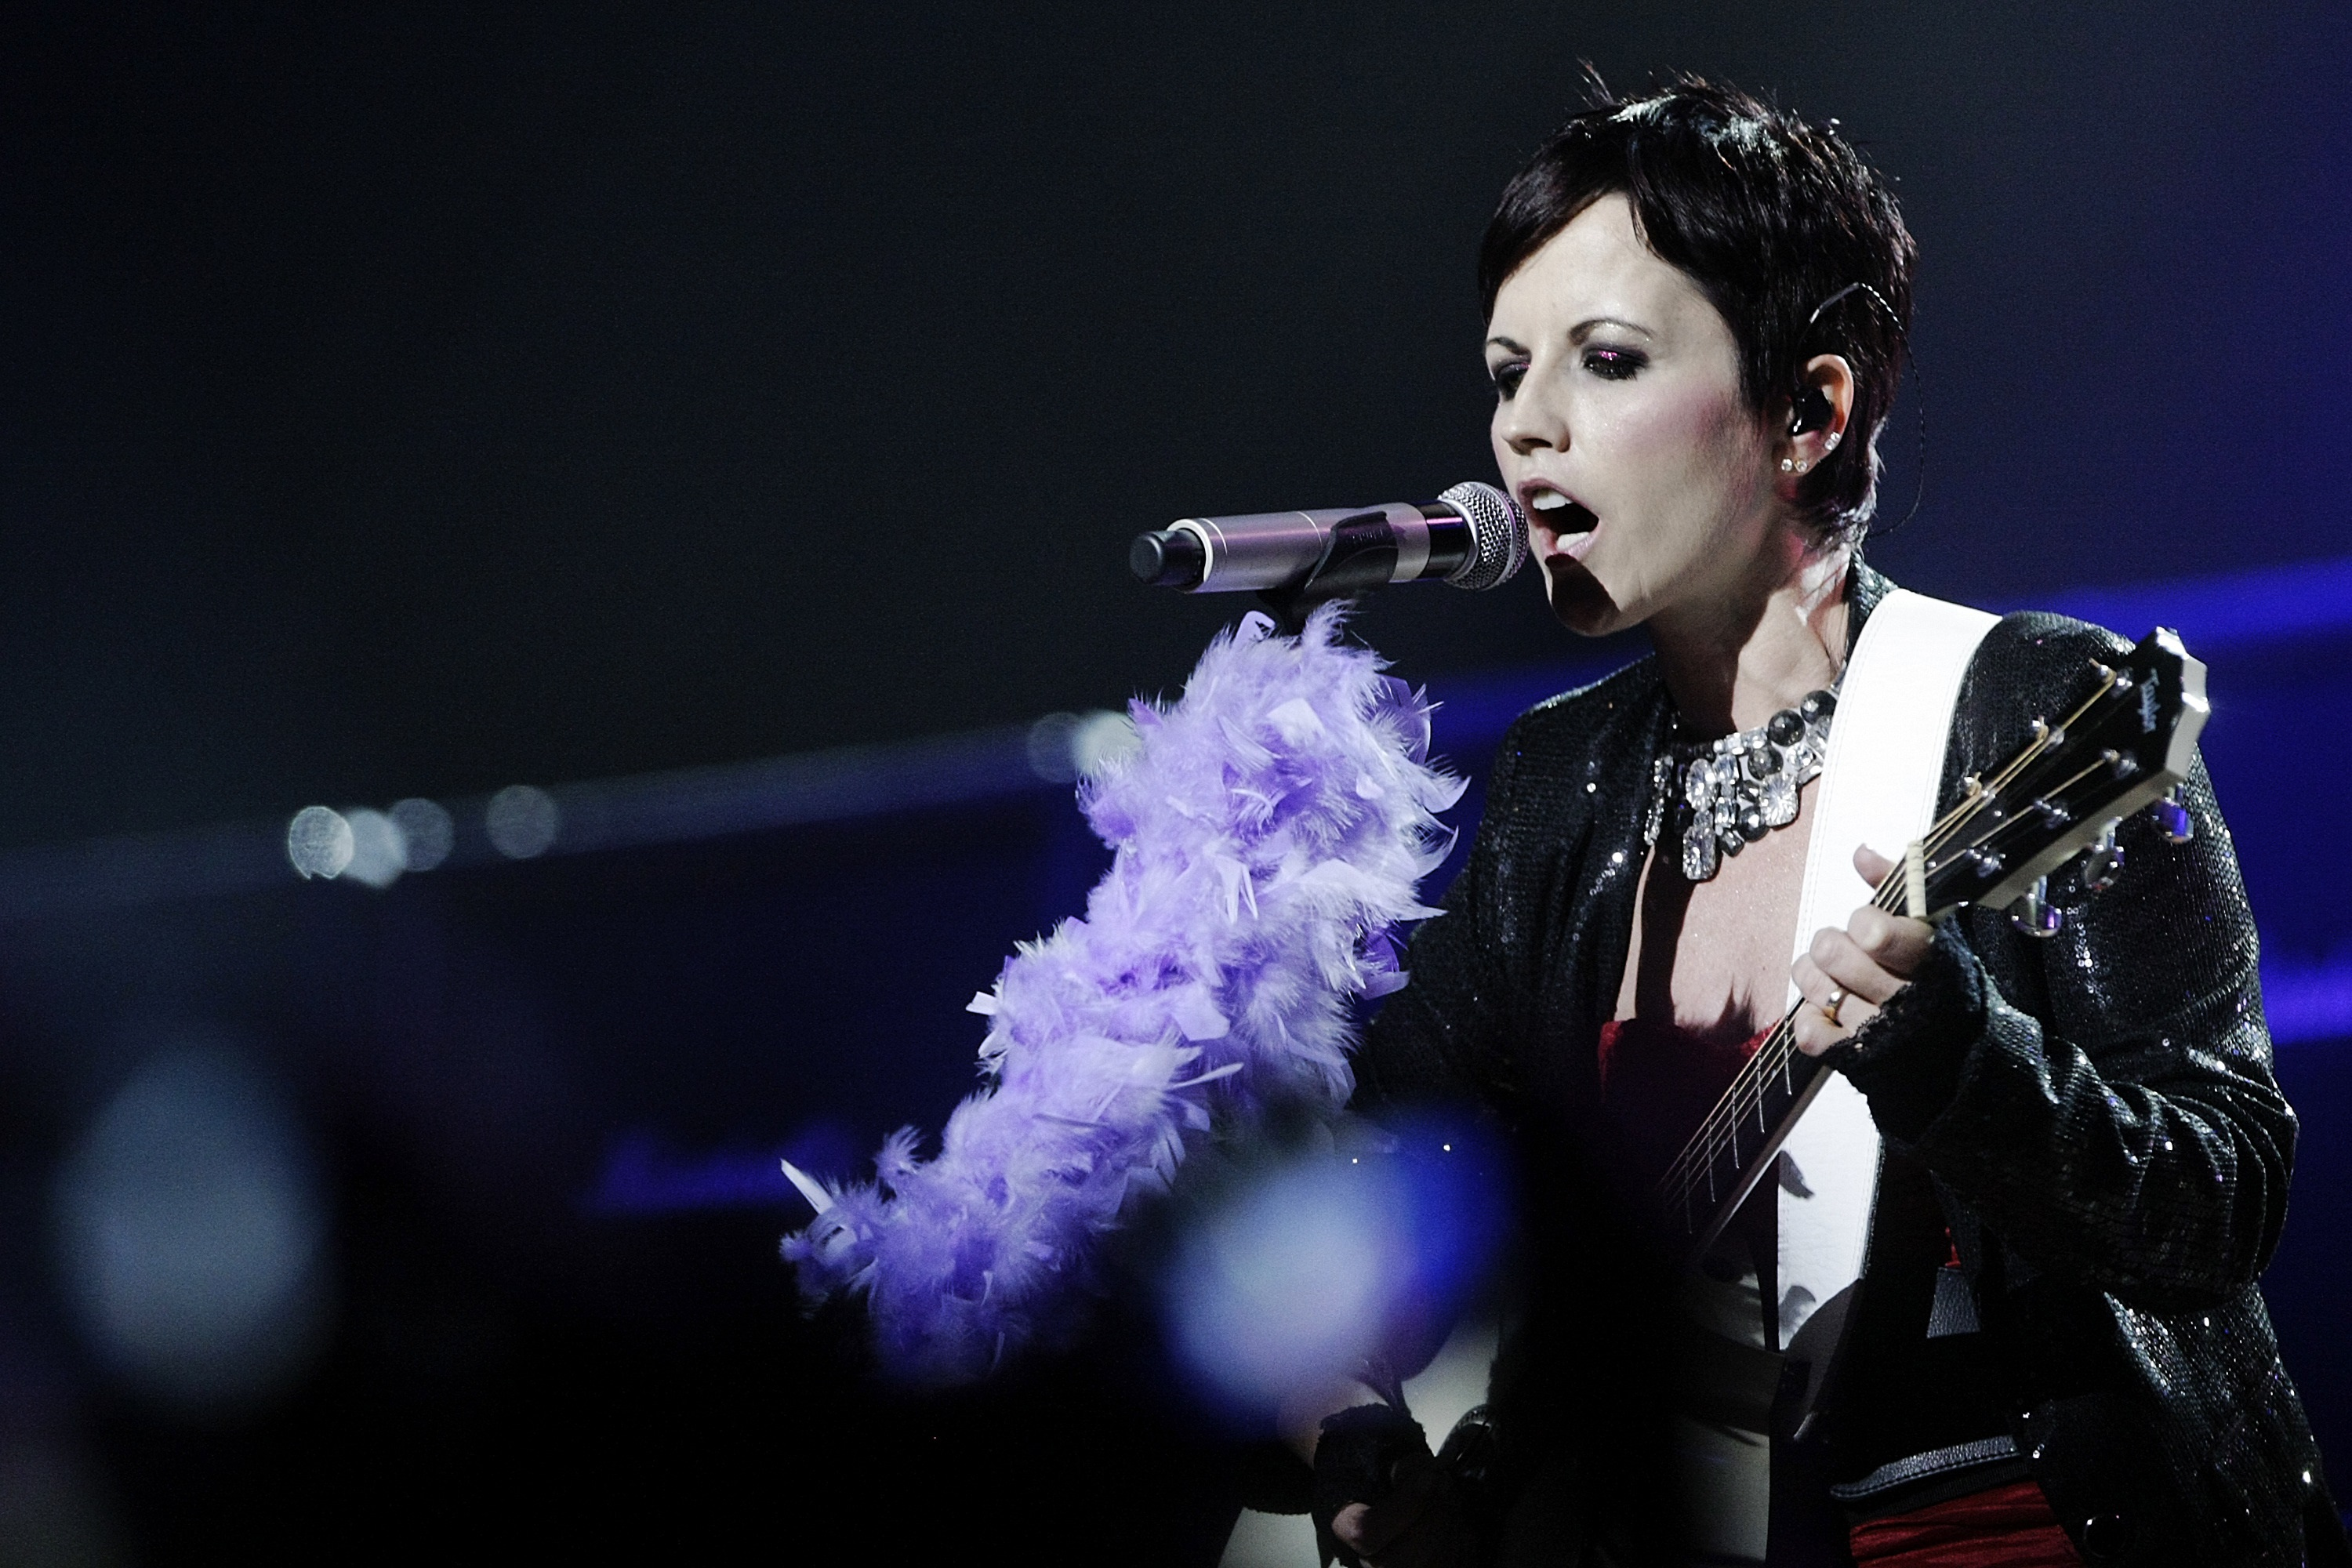 A los 46 años falleció Dolores O'Riordan, vocalista de The Cranberries